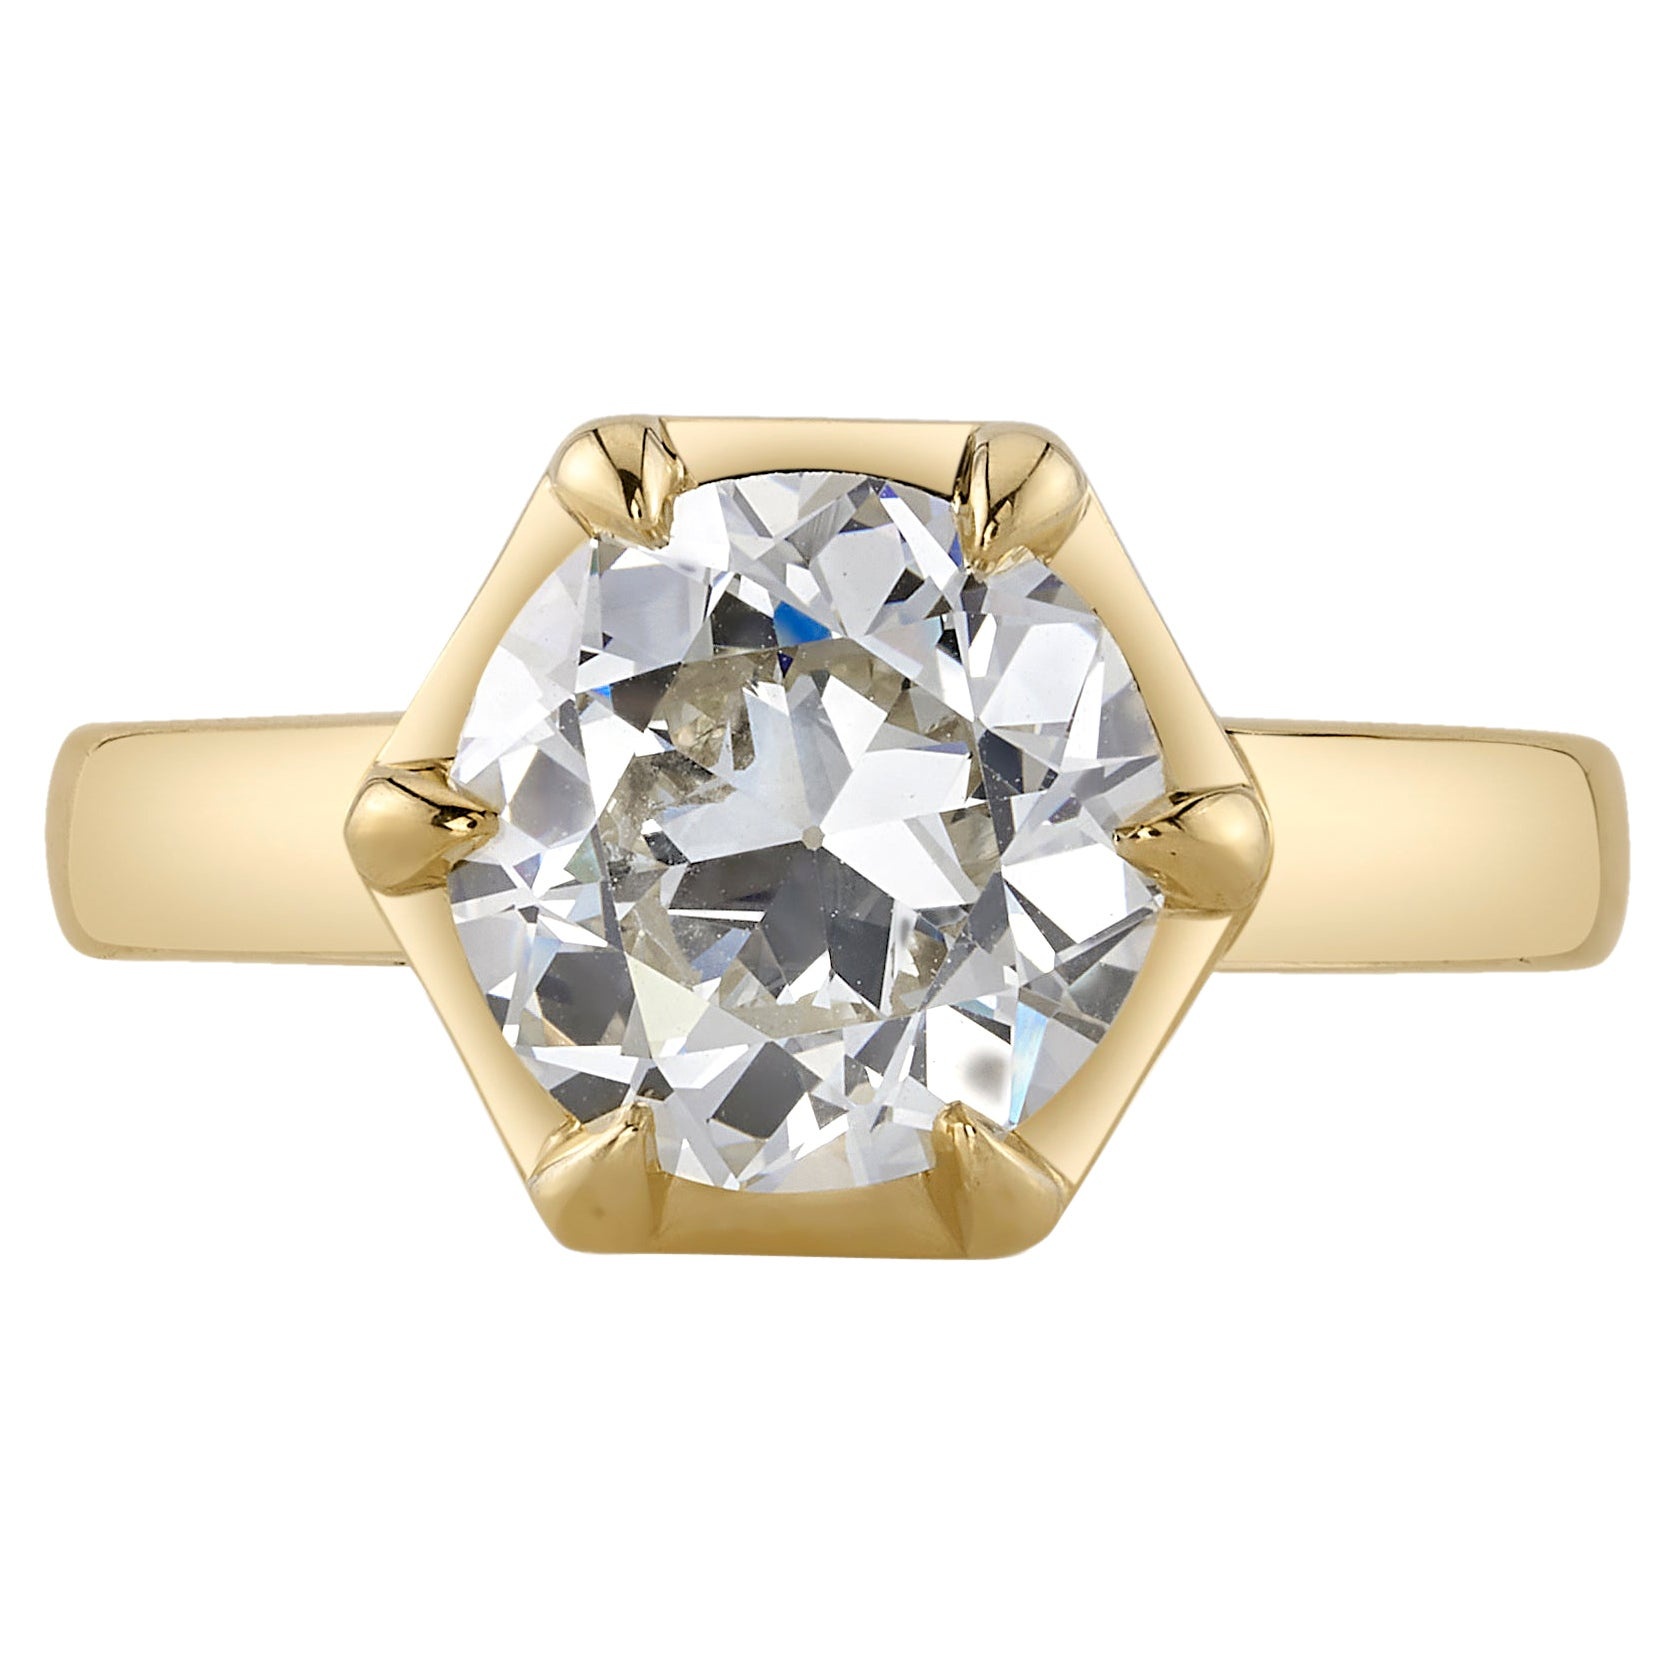 Handcrafted Odette Old European Cut Diamond Ring by Single Stone